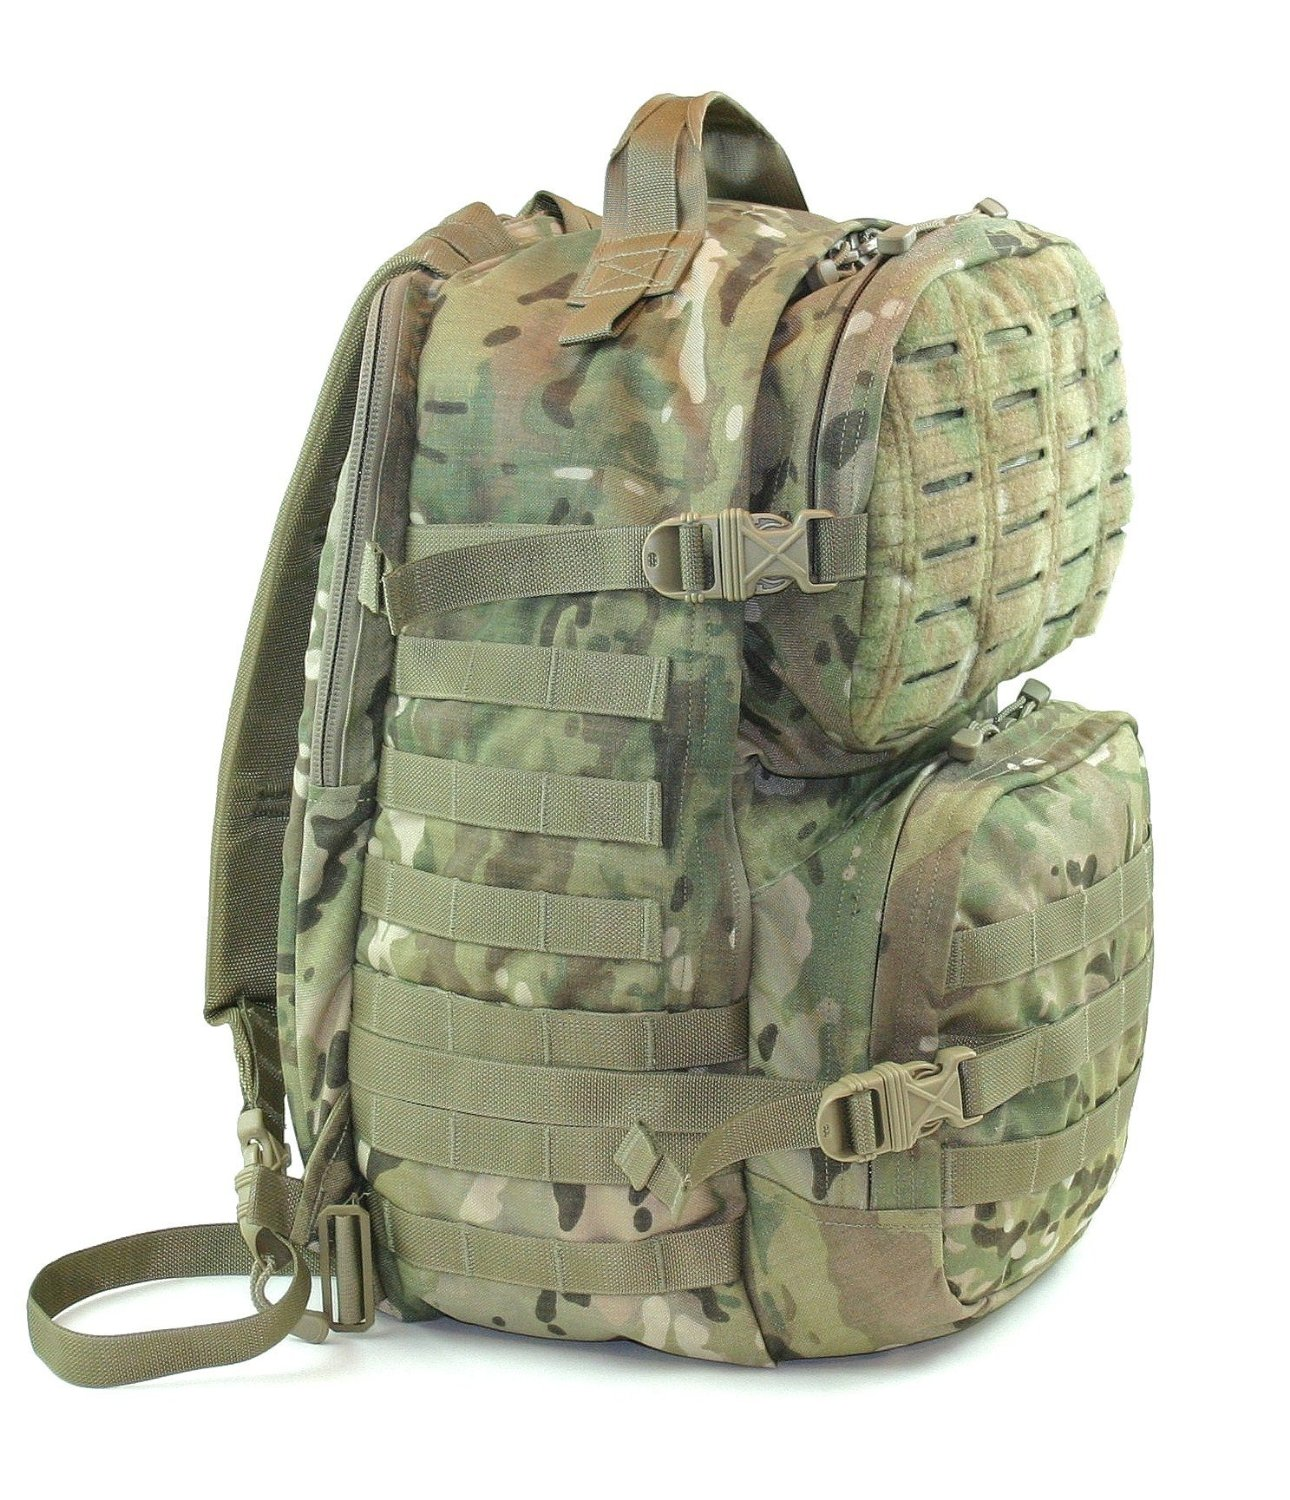 The Ultimate Assault Pack by Spec. Ops. Brand. in multicam.